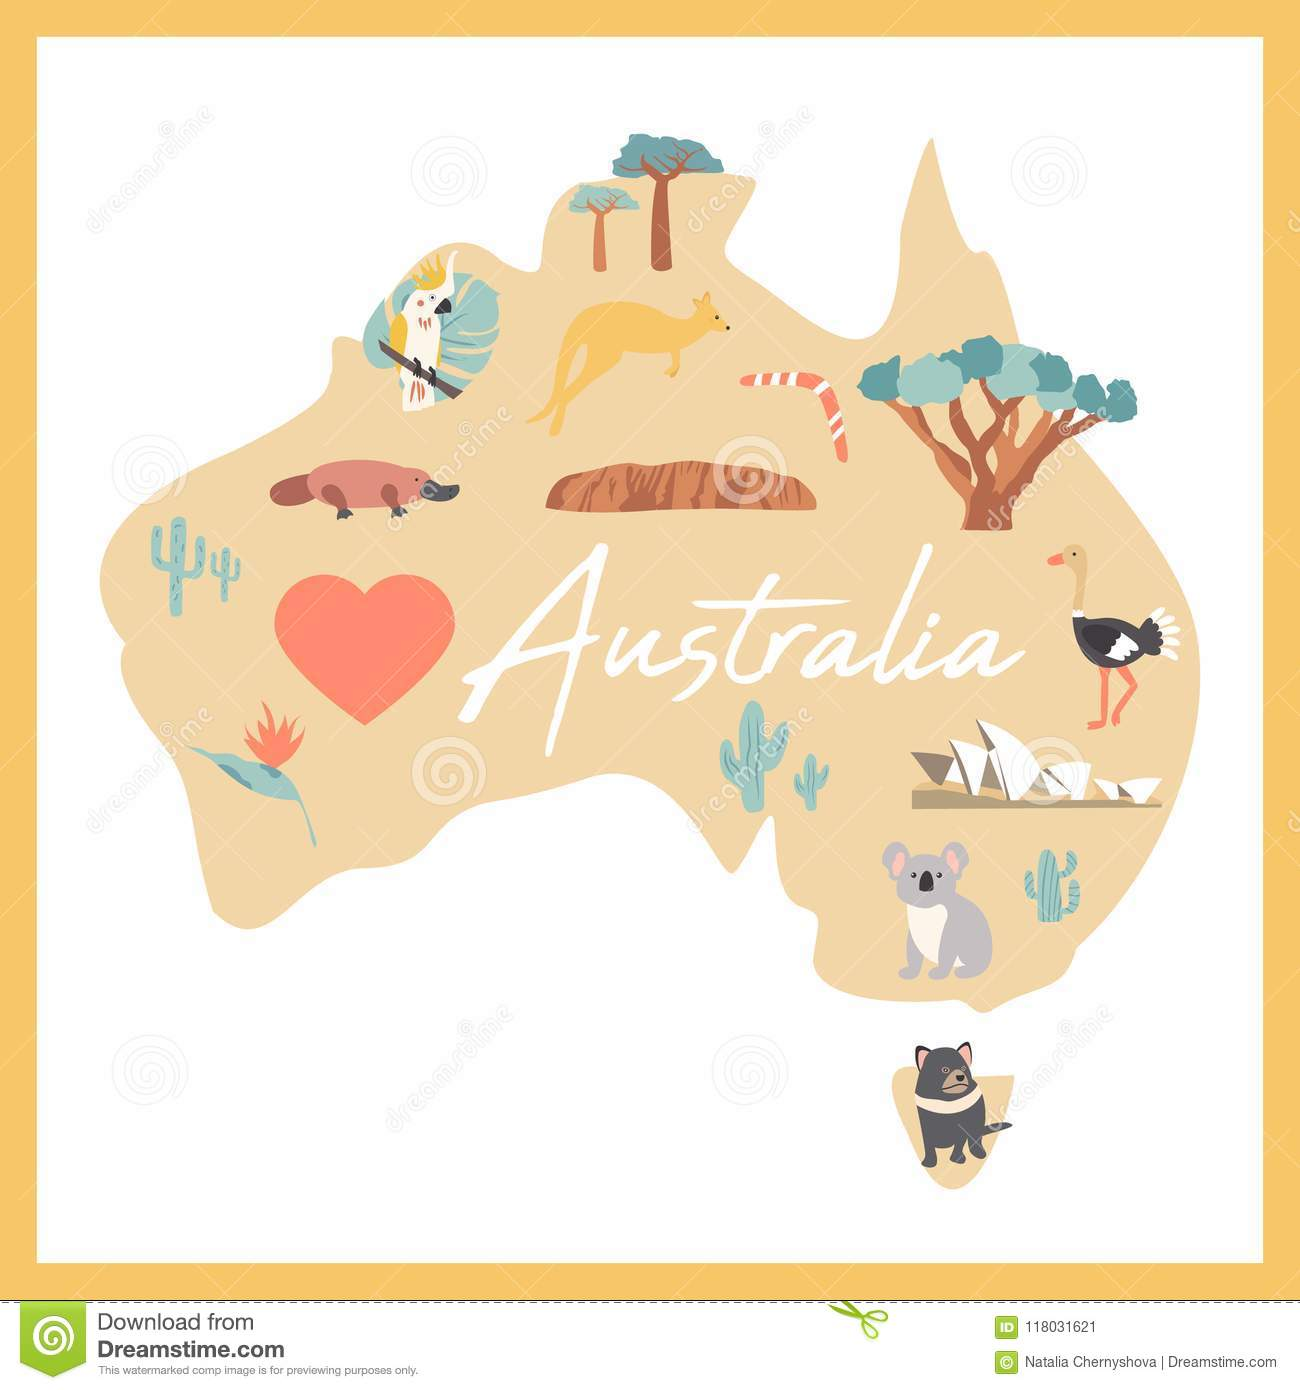 Map Of Australia Desert.Map Of Australia With Landmarks And Wildlife Stock Vector